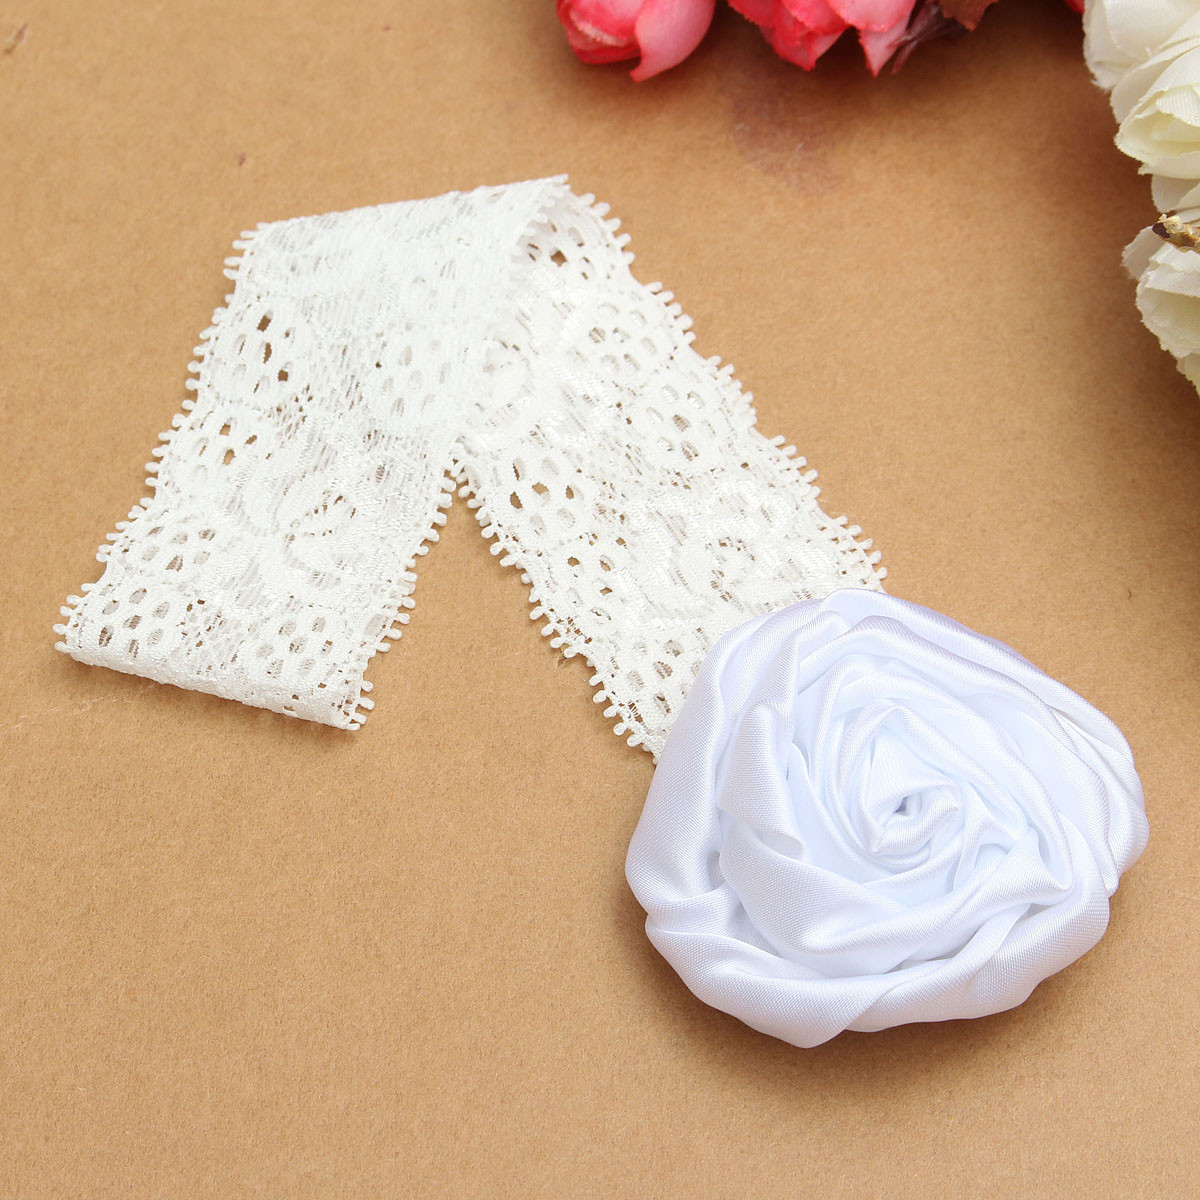 Baby Newborn Kids Girls Photography Soft Wrap Hair Band Elastic Flower Lace Elastic Band Head Accessories Gift